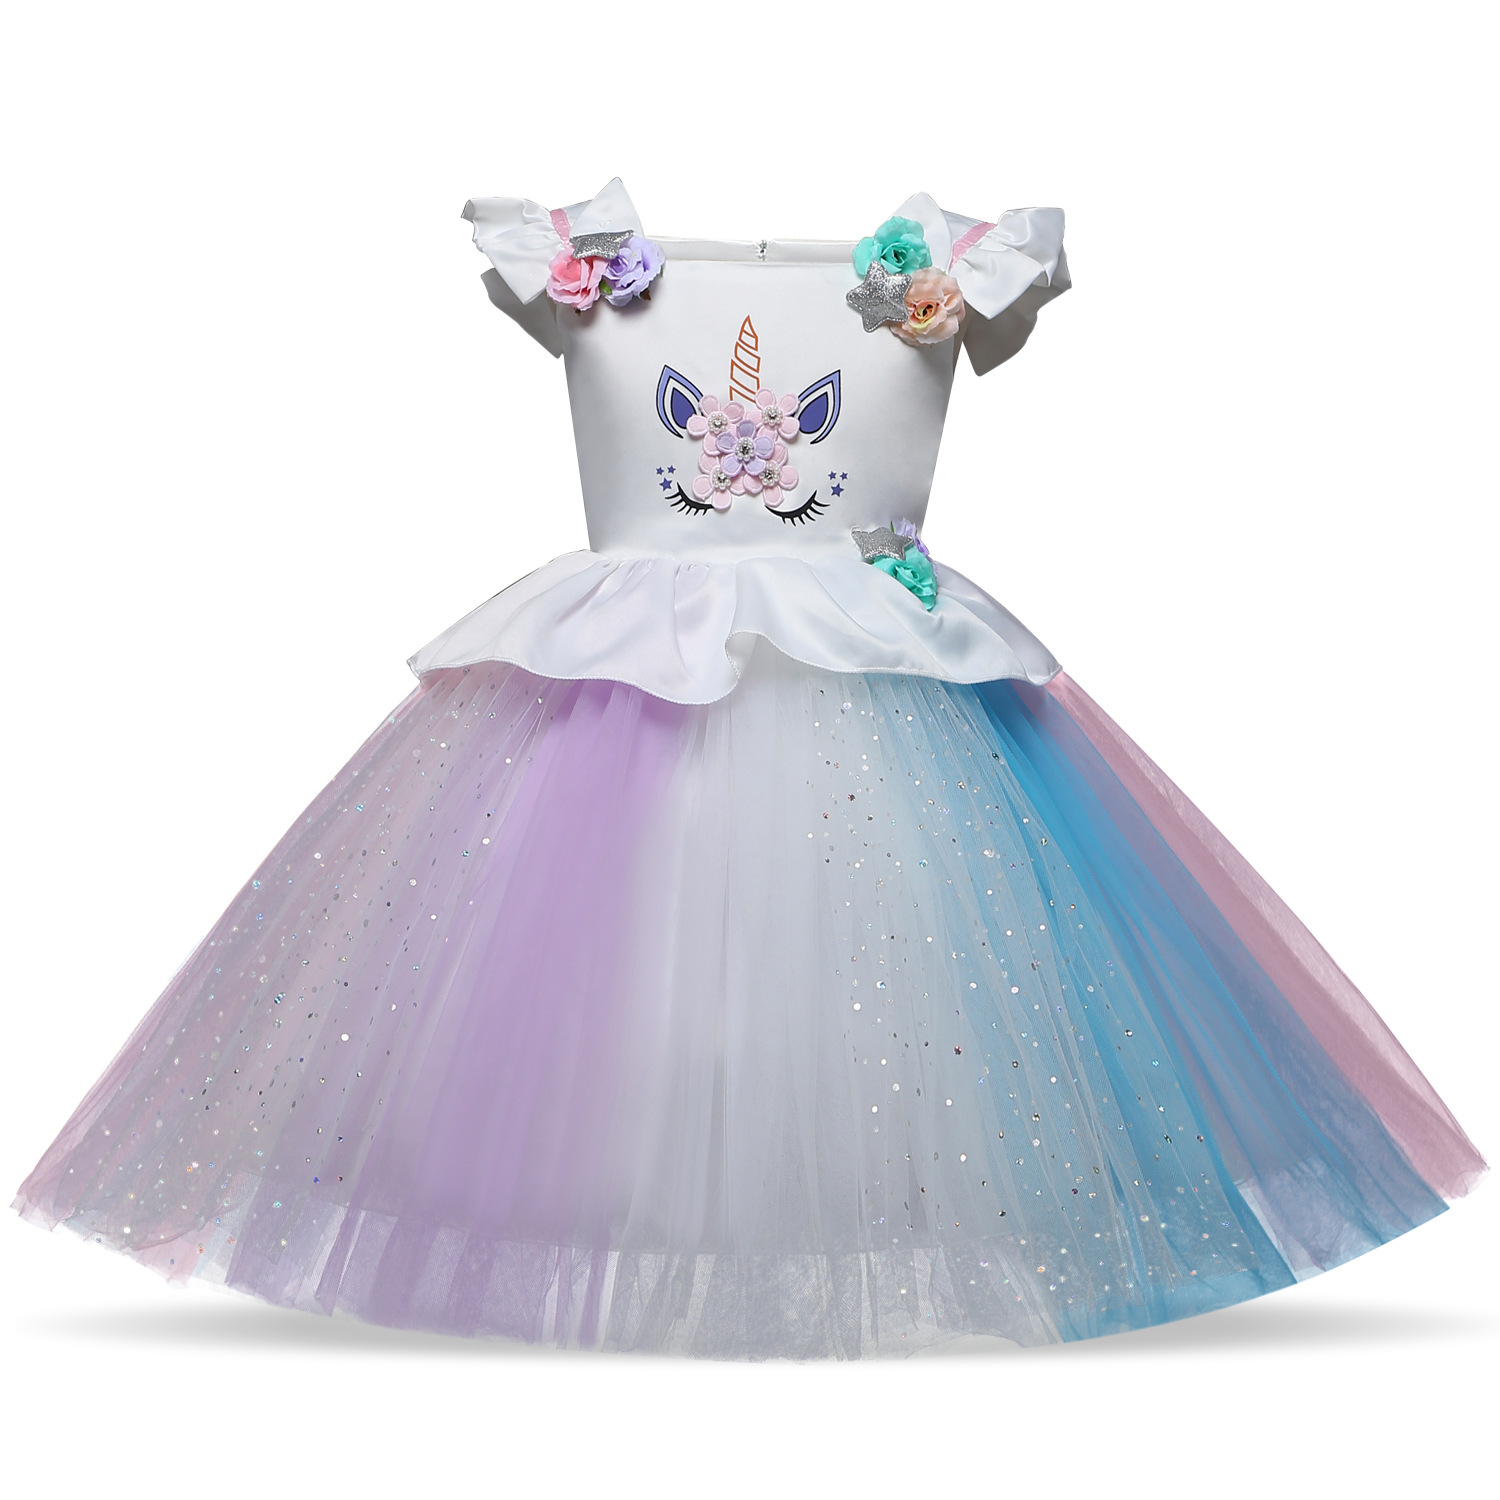 2018 New style 2-10 year summer dress Unicorn children princess dress  Children s clothing girls 073988a6ee91